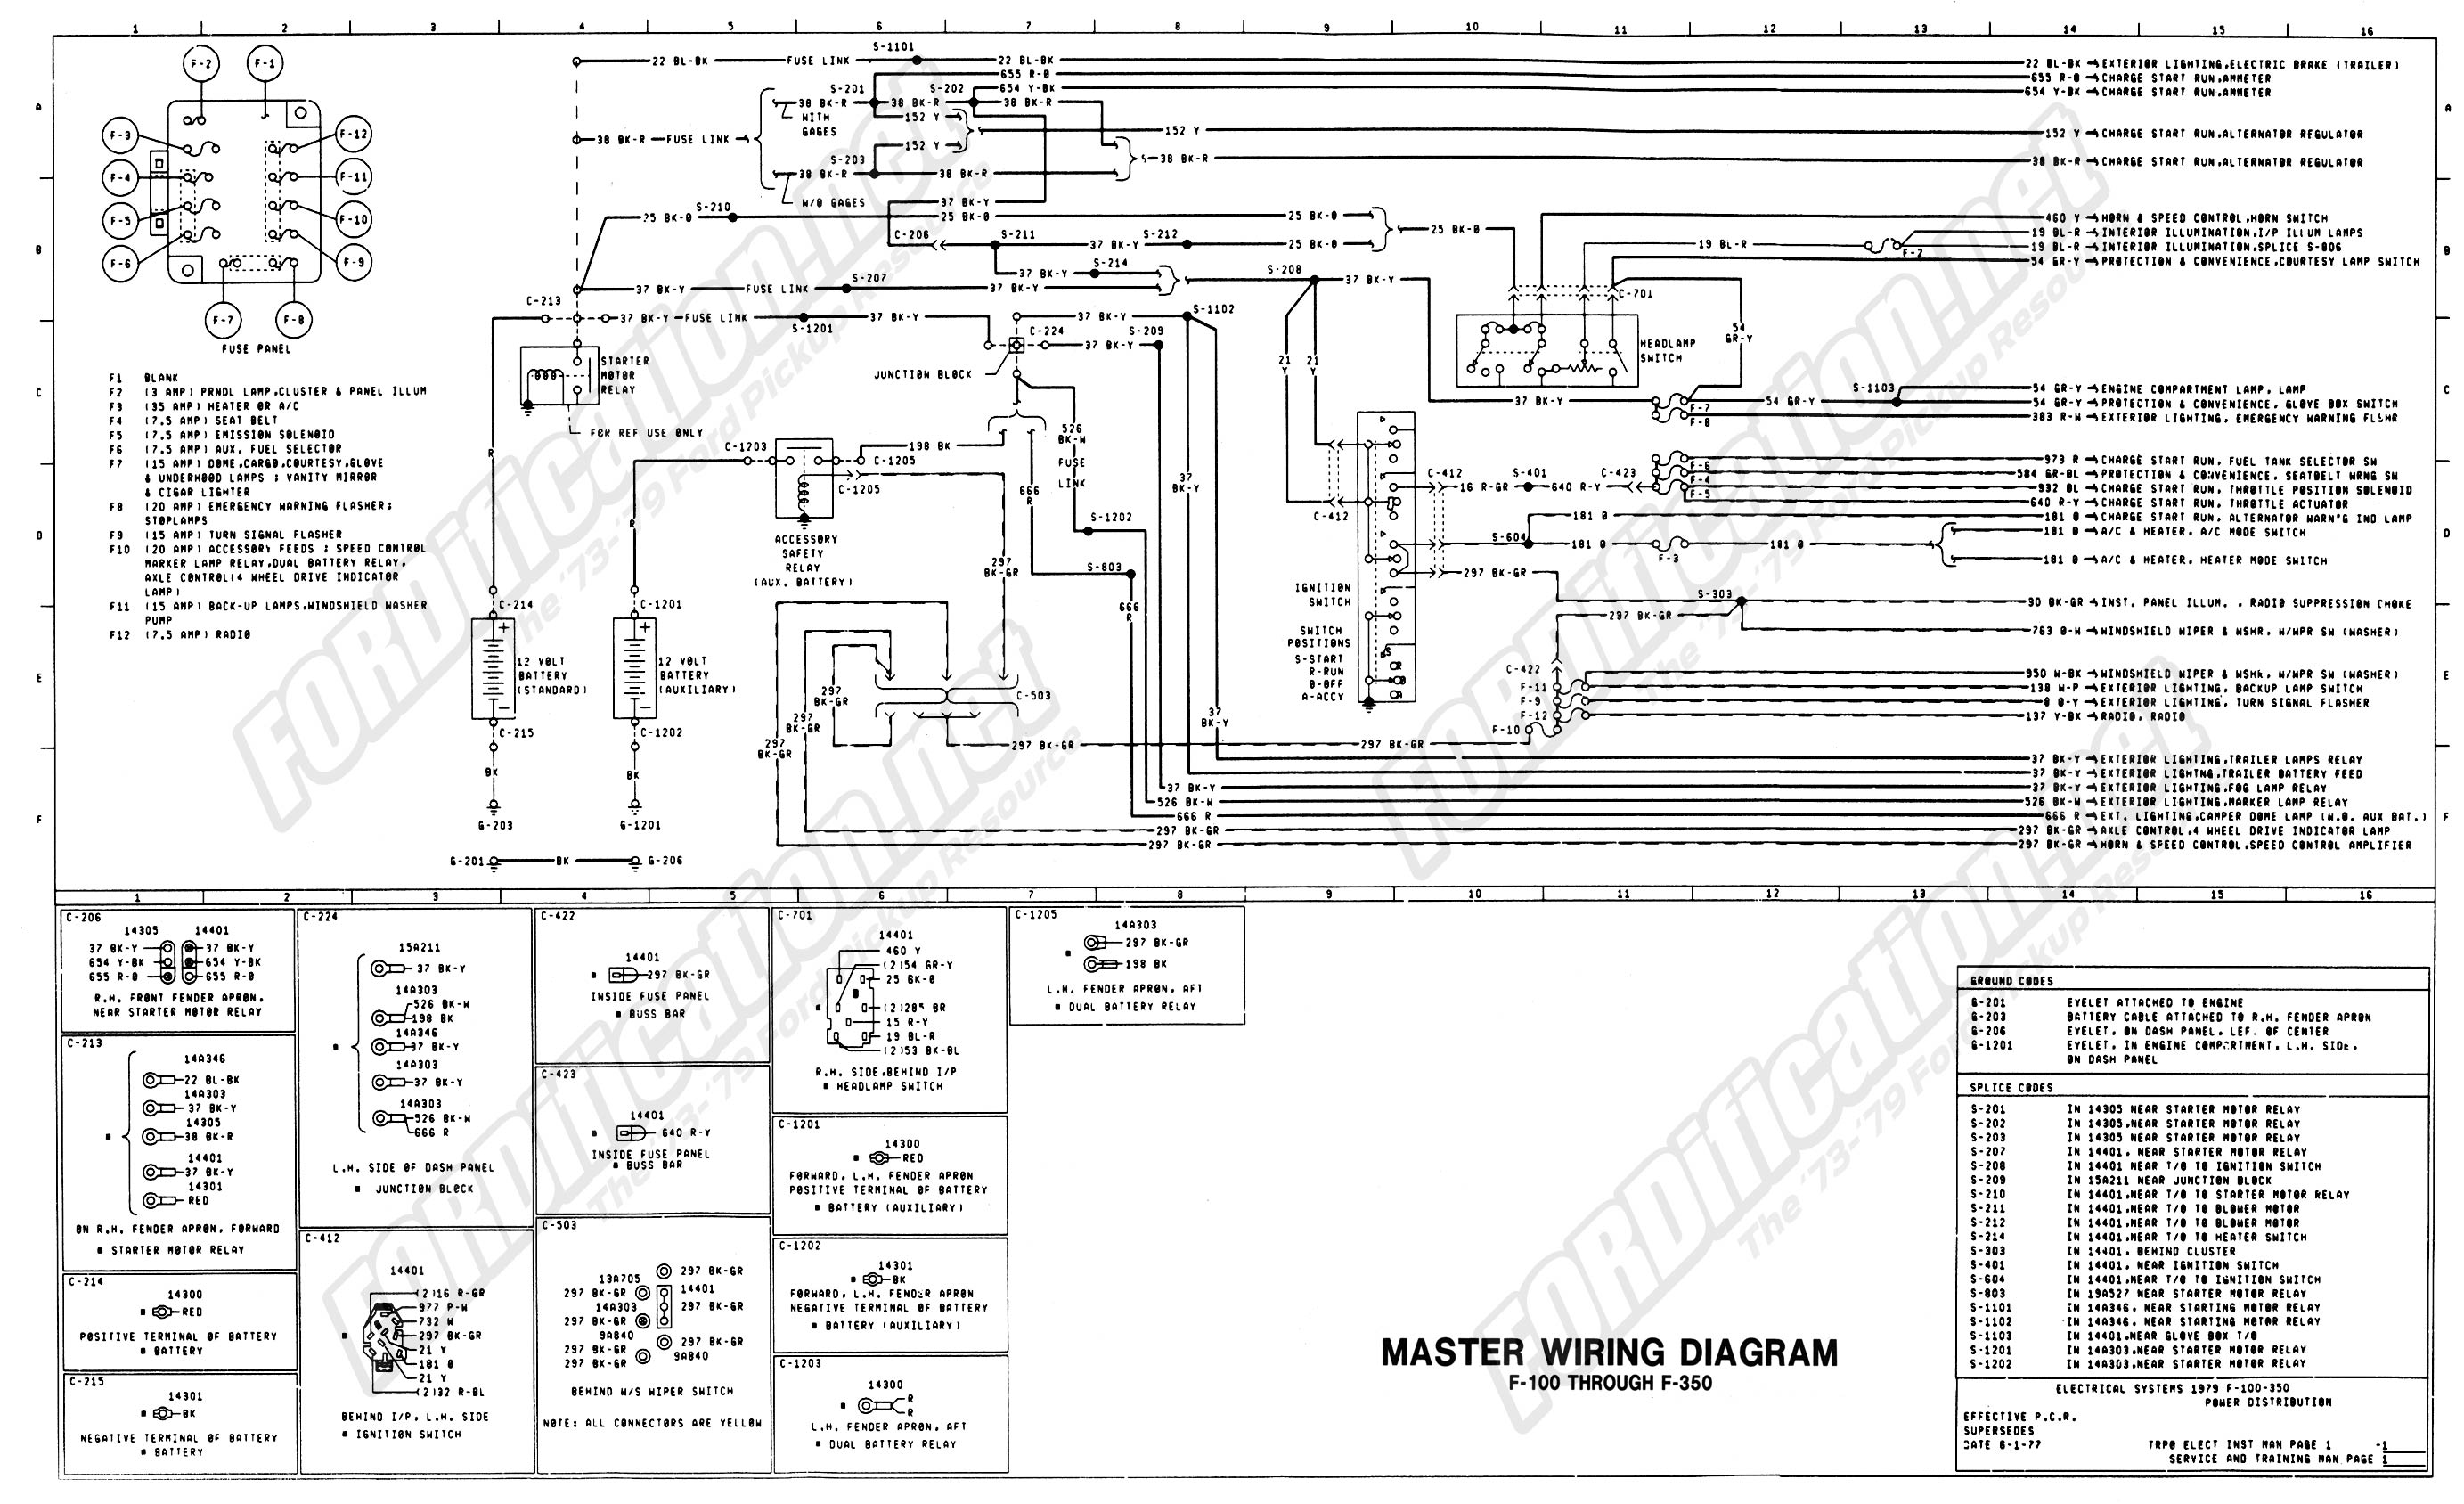 1966 Ford F100 Blinker Switch Wiring Trusted Diagram 1970 Pontiac Gto Schematic Vehicle Diagrams